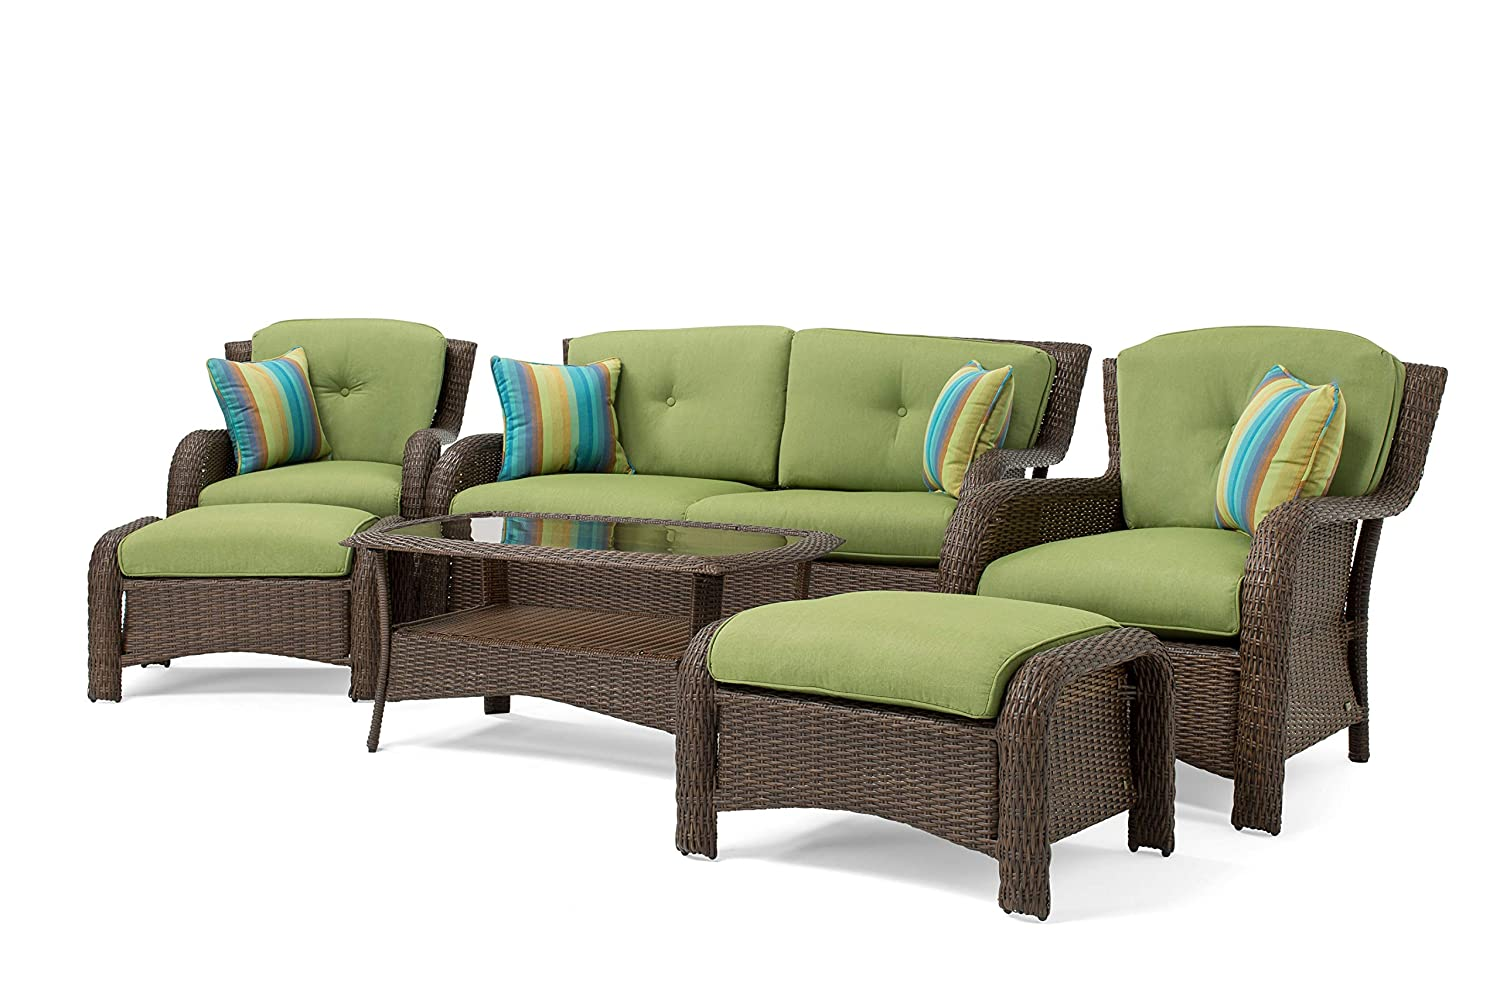 Amazon com la z boy outdoor sawyer 6 piece resin wicker patio furniture conversation set cilantro green with all weather sunbrella cushions garden